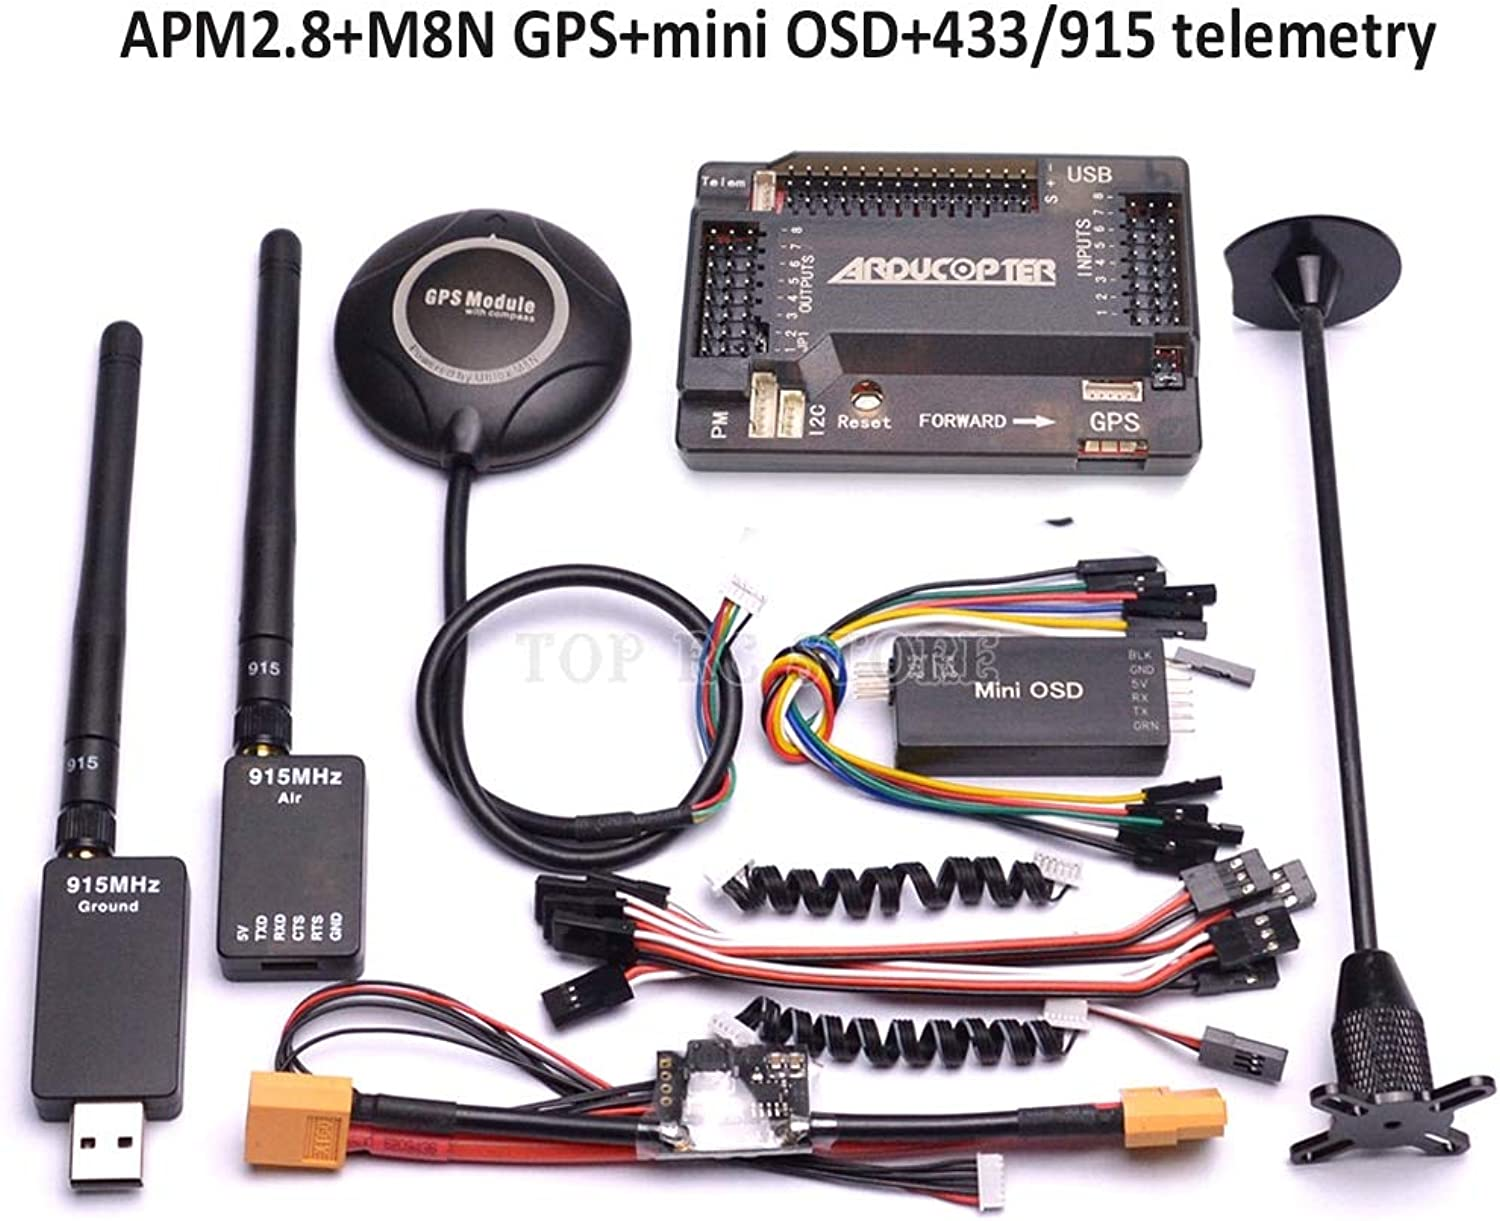 Laliva APM2.8 APM 2.8 Flight Controller M8N 8N GPS Compass with Power Moudle Mini OSD   915Mhz   433Mhz 100mw Telemetry Kit  (color  Without telemetry)